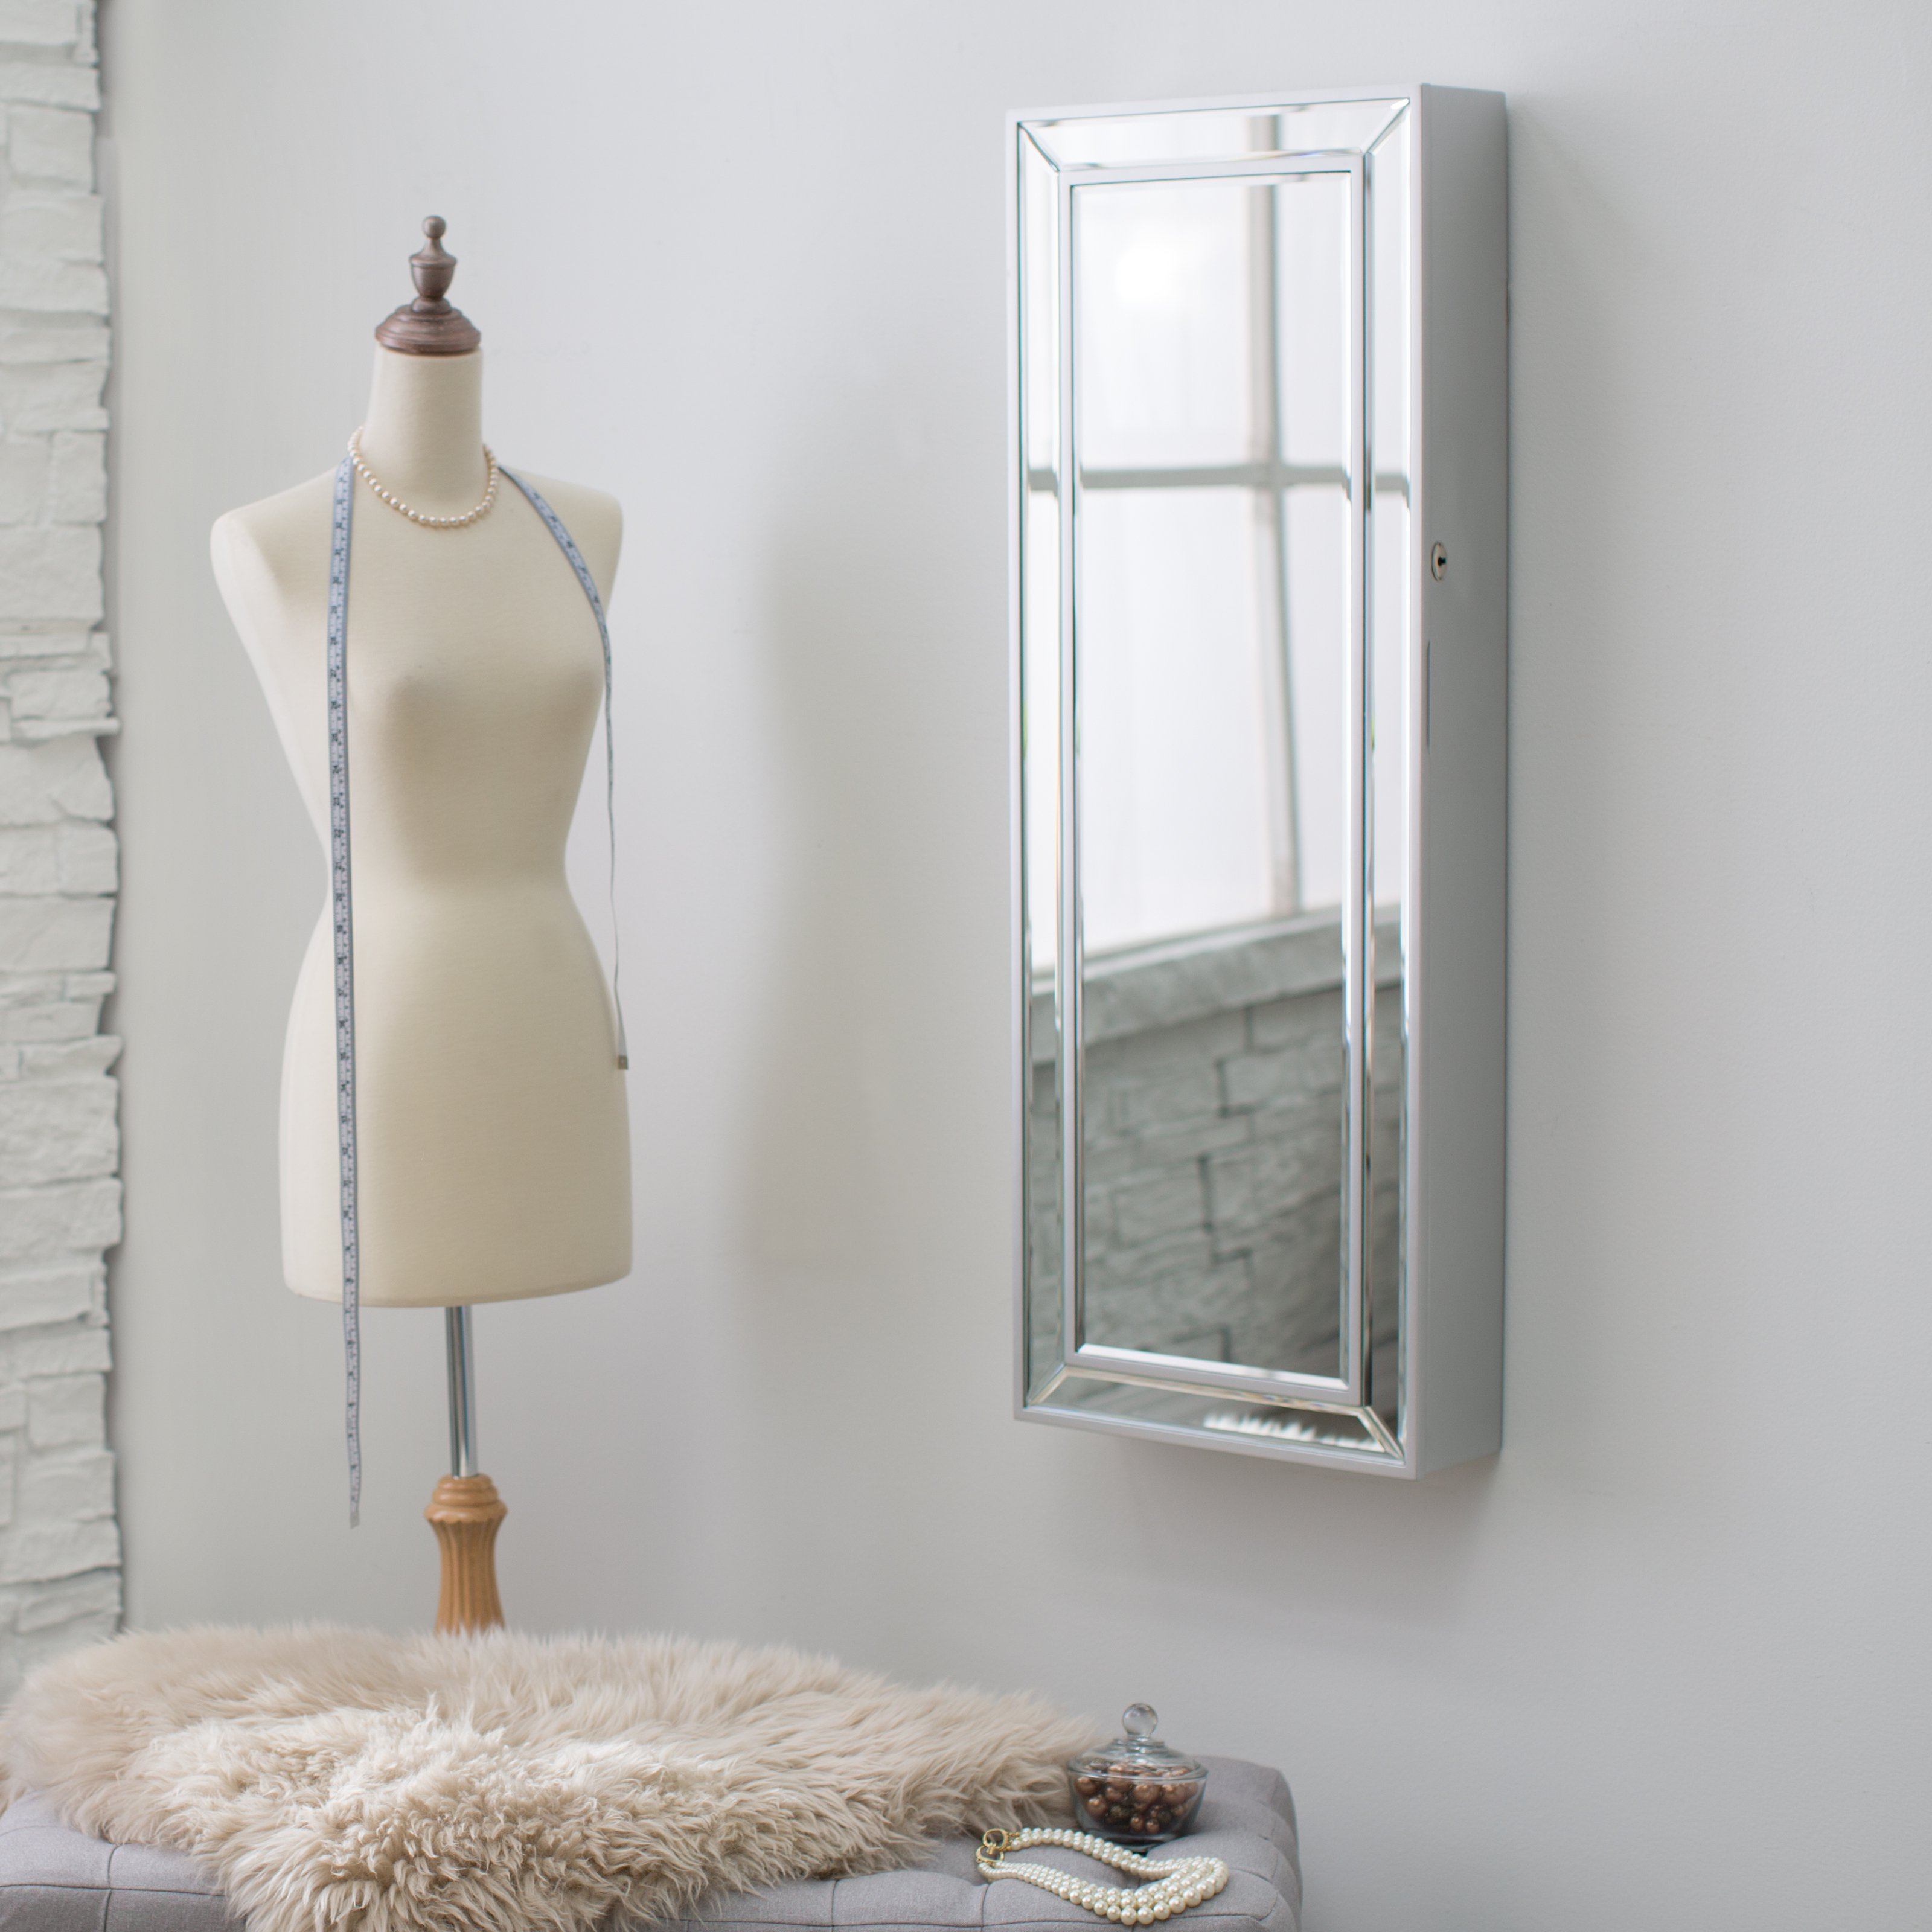 Elegant Standing Mirror Jewelry Armoire In Silver Before The Gainsboro Wall Plus Bench For Living Room Decor Ideas